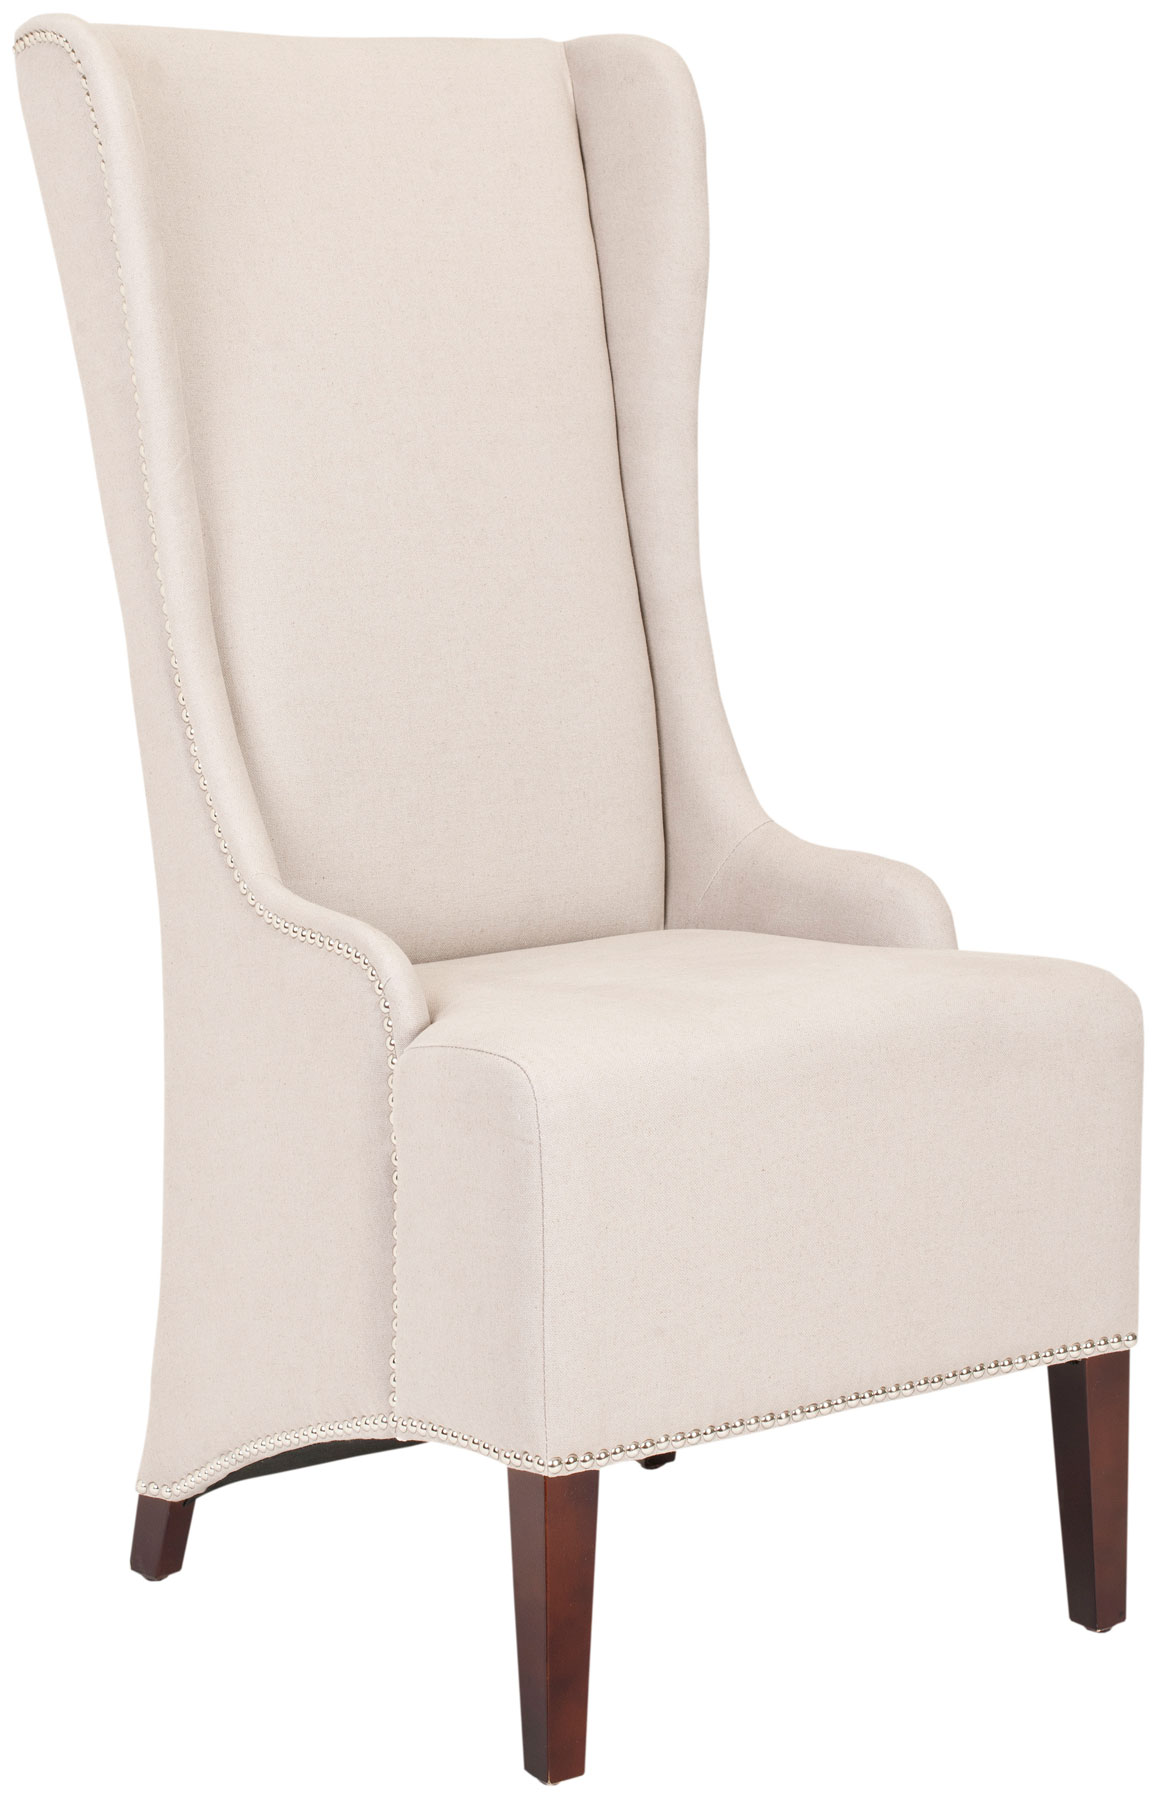 MCR4501F Dining Chairs Furniture by Safavieh